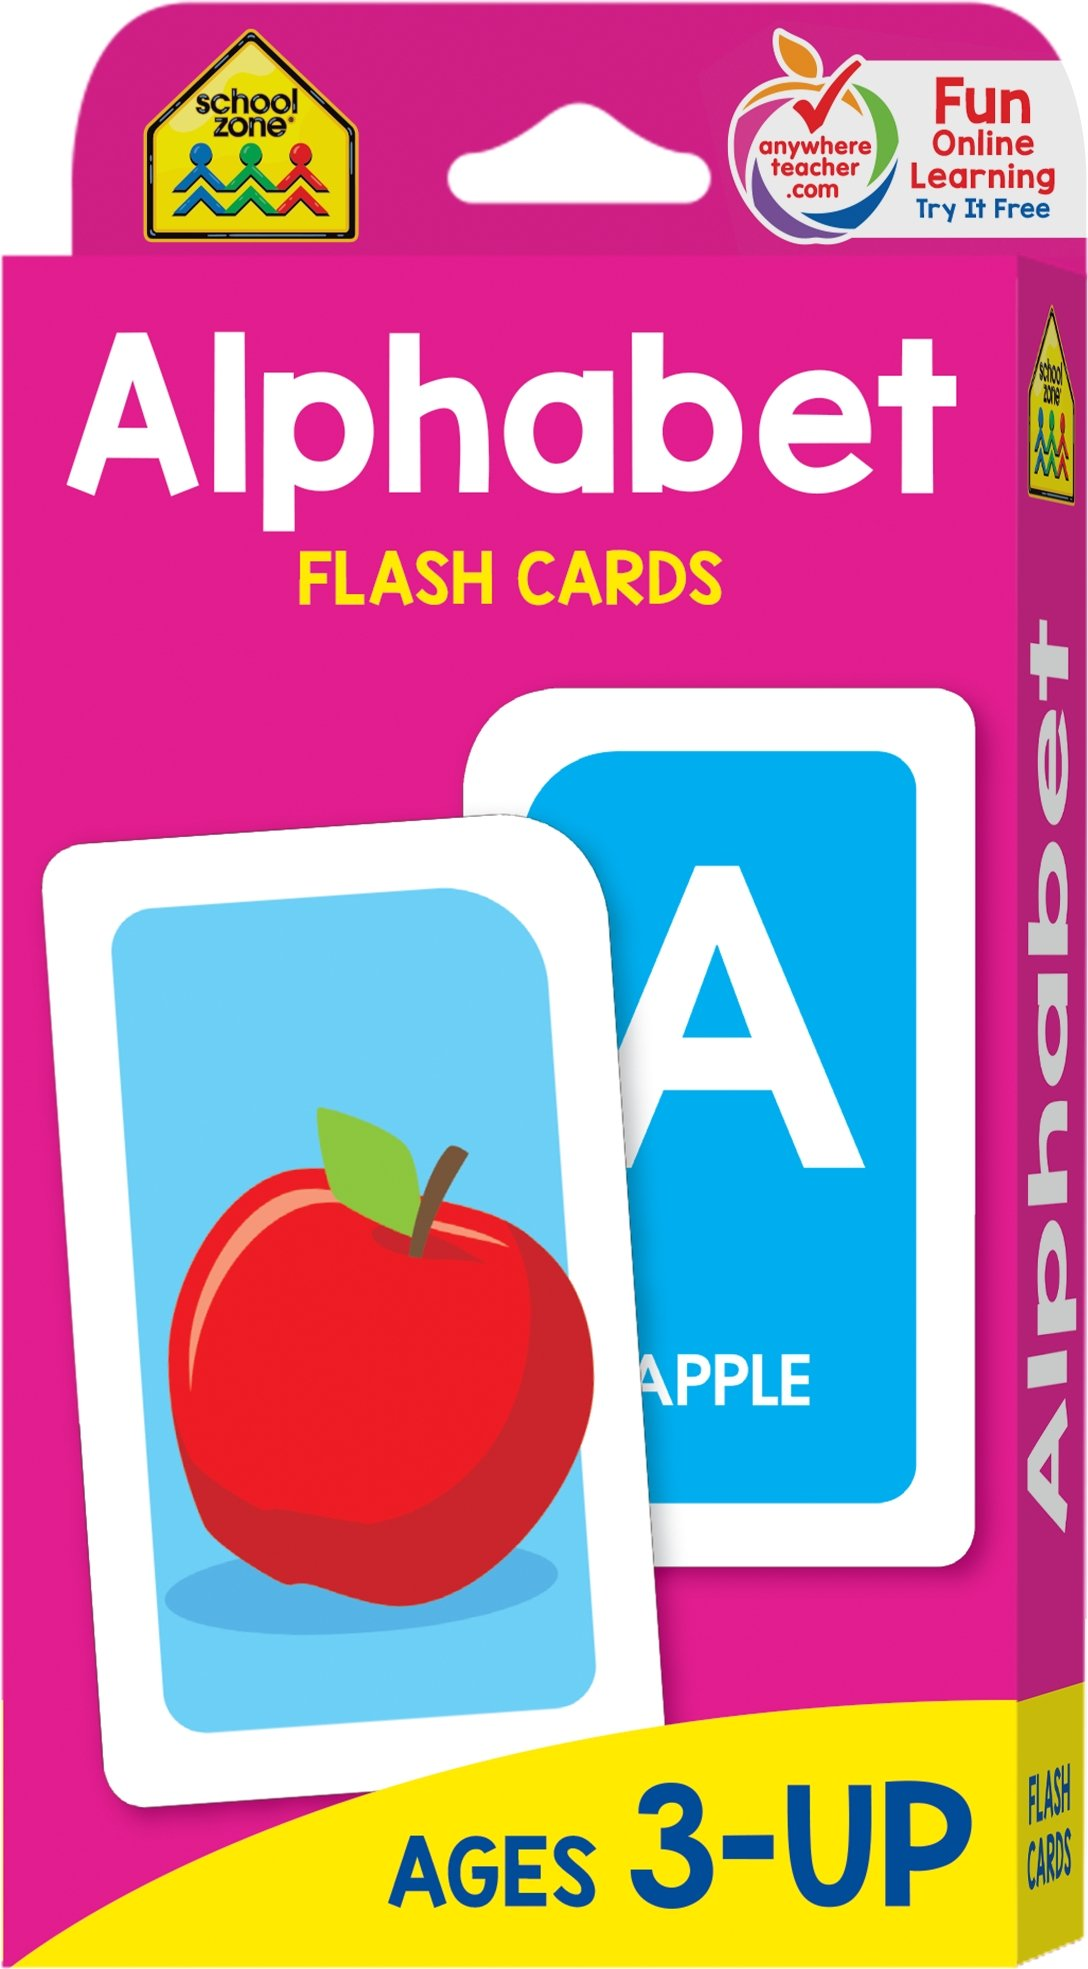 School Zone - Alphabet Flash Cards - Ages 3 and Up